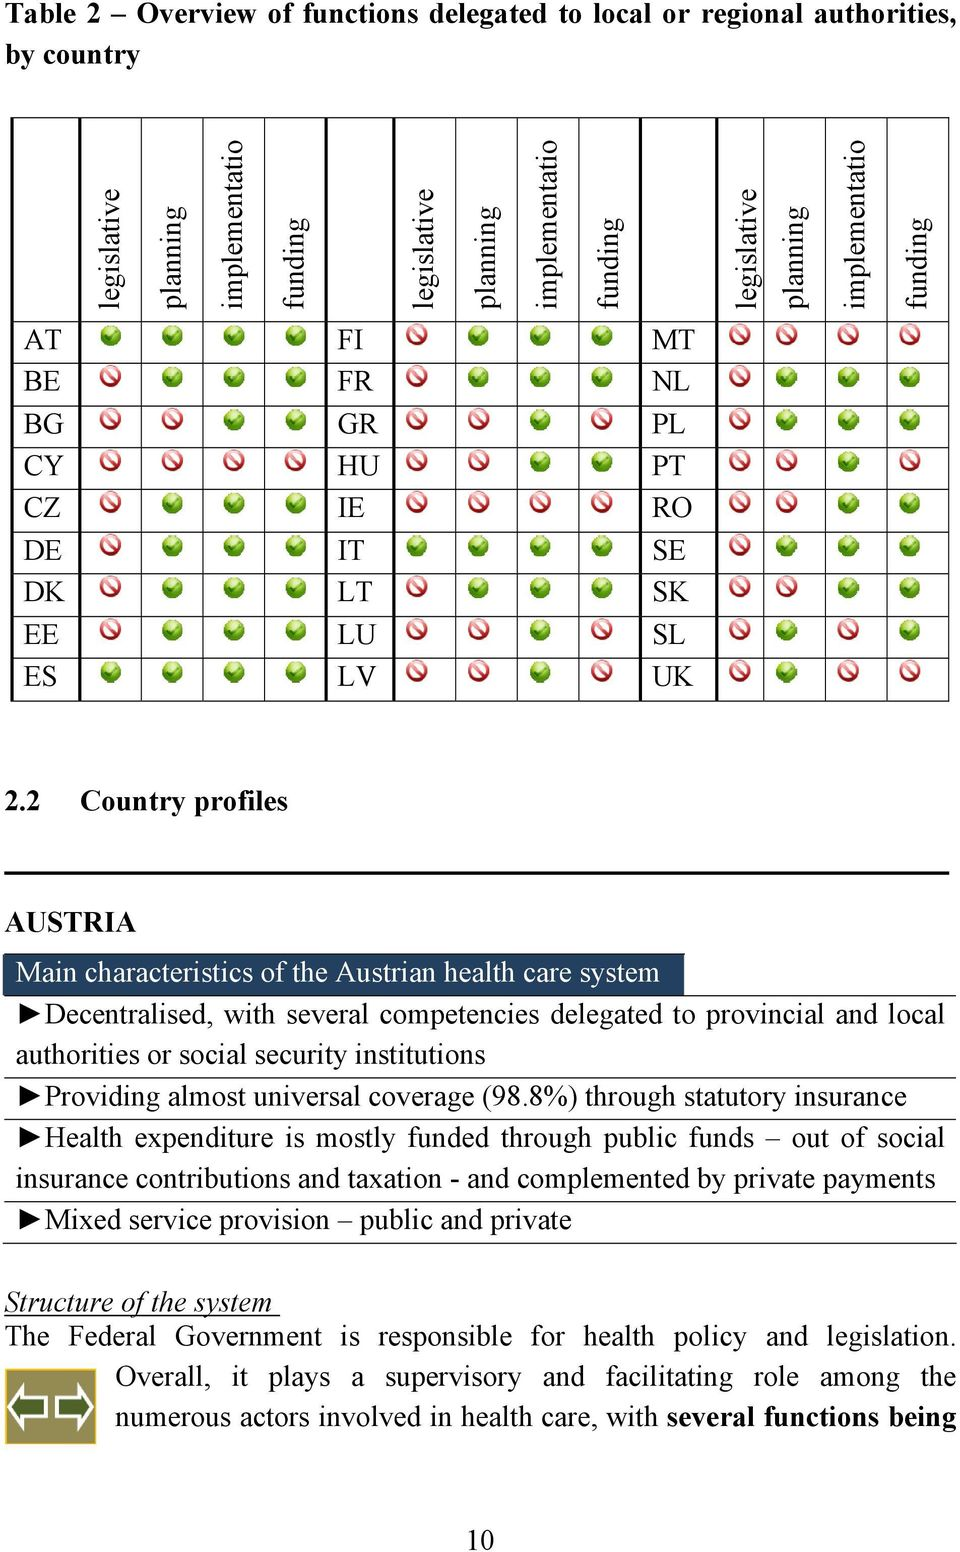 2 Country profiles AUSTRIA Main characteristics of the Austrian health care system Decentralised, with several competencies delegated to provincial and local authorities or social security